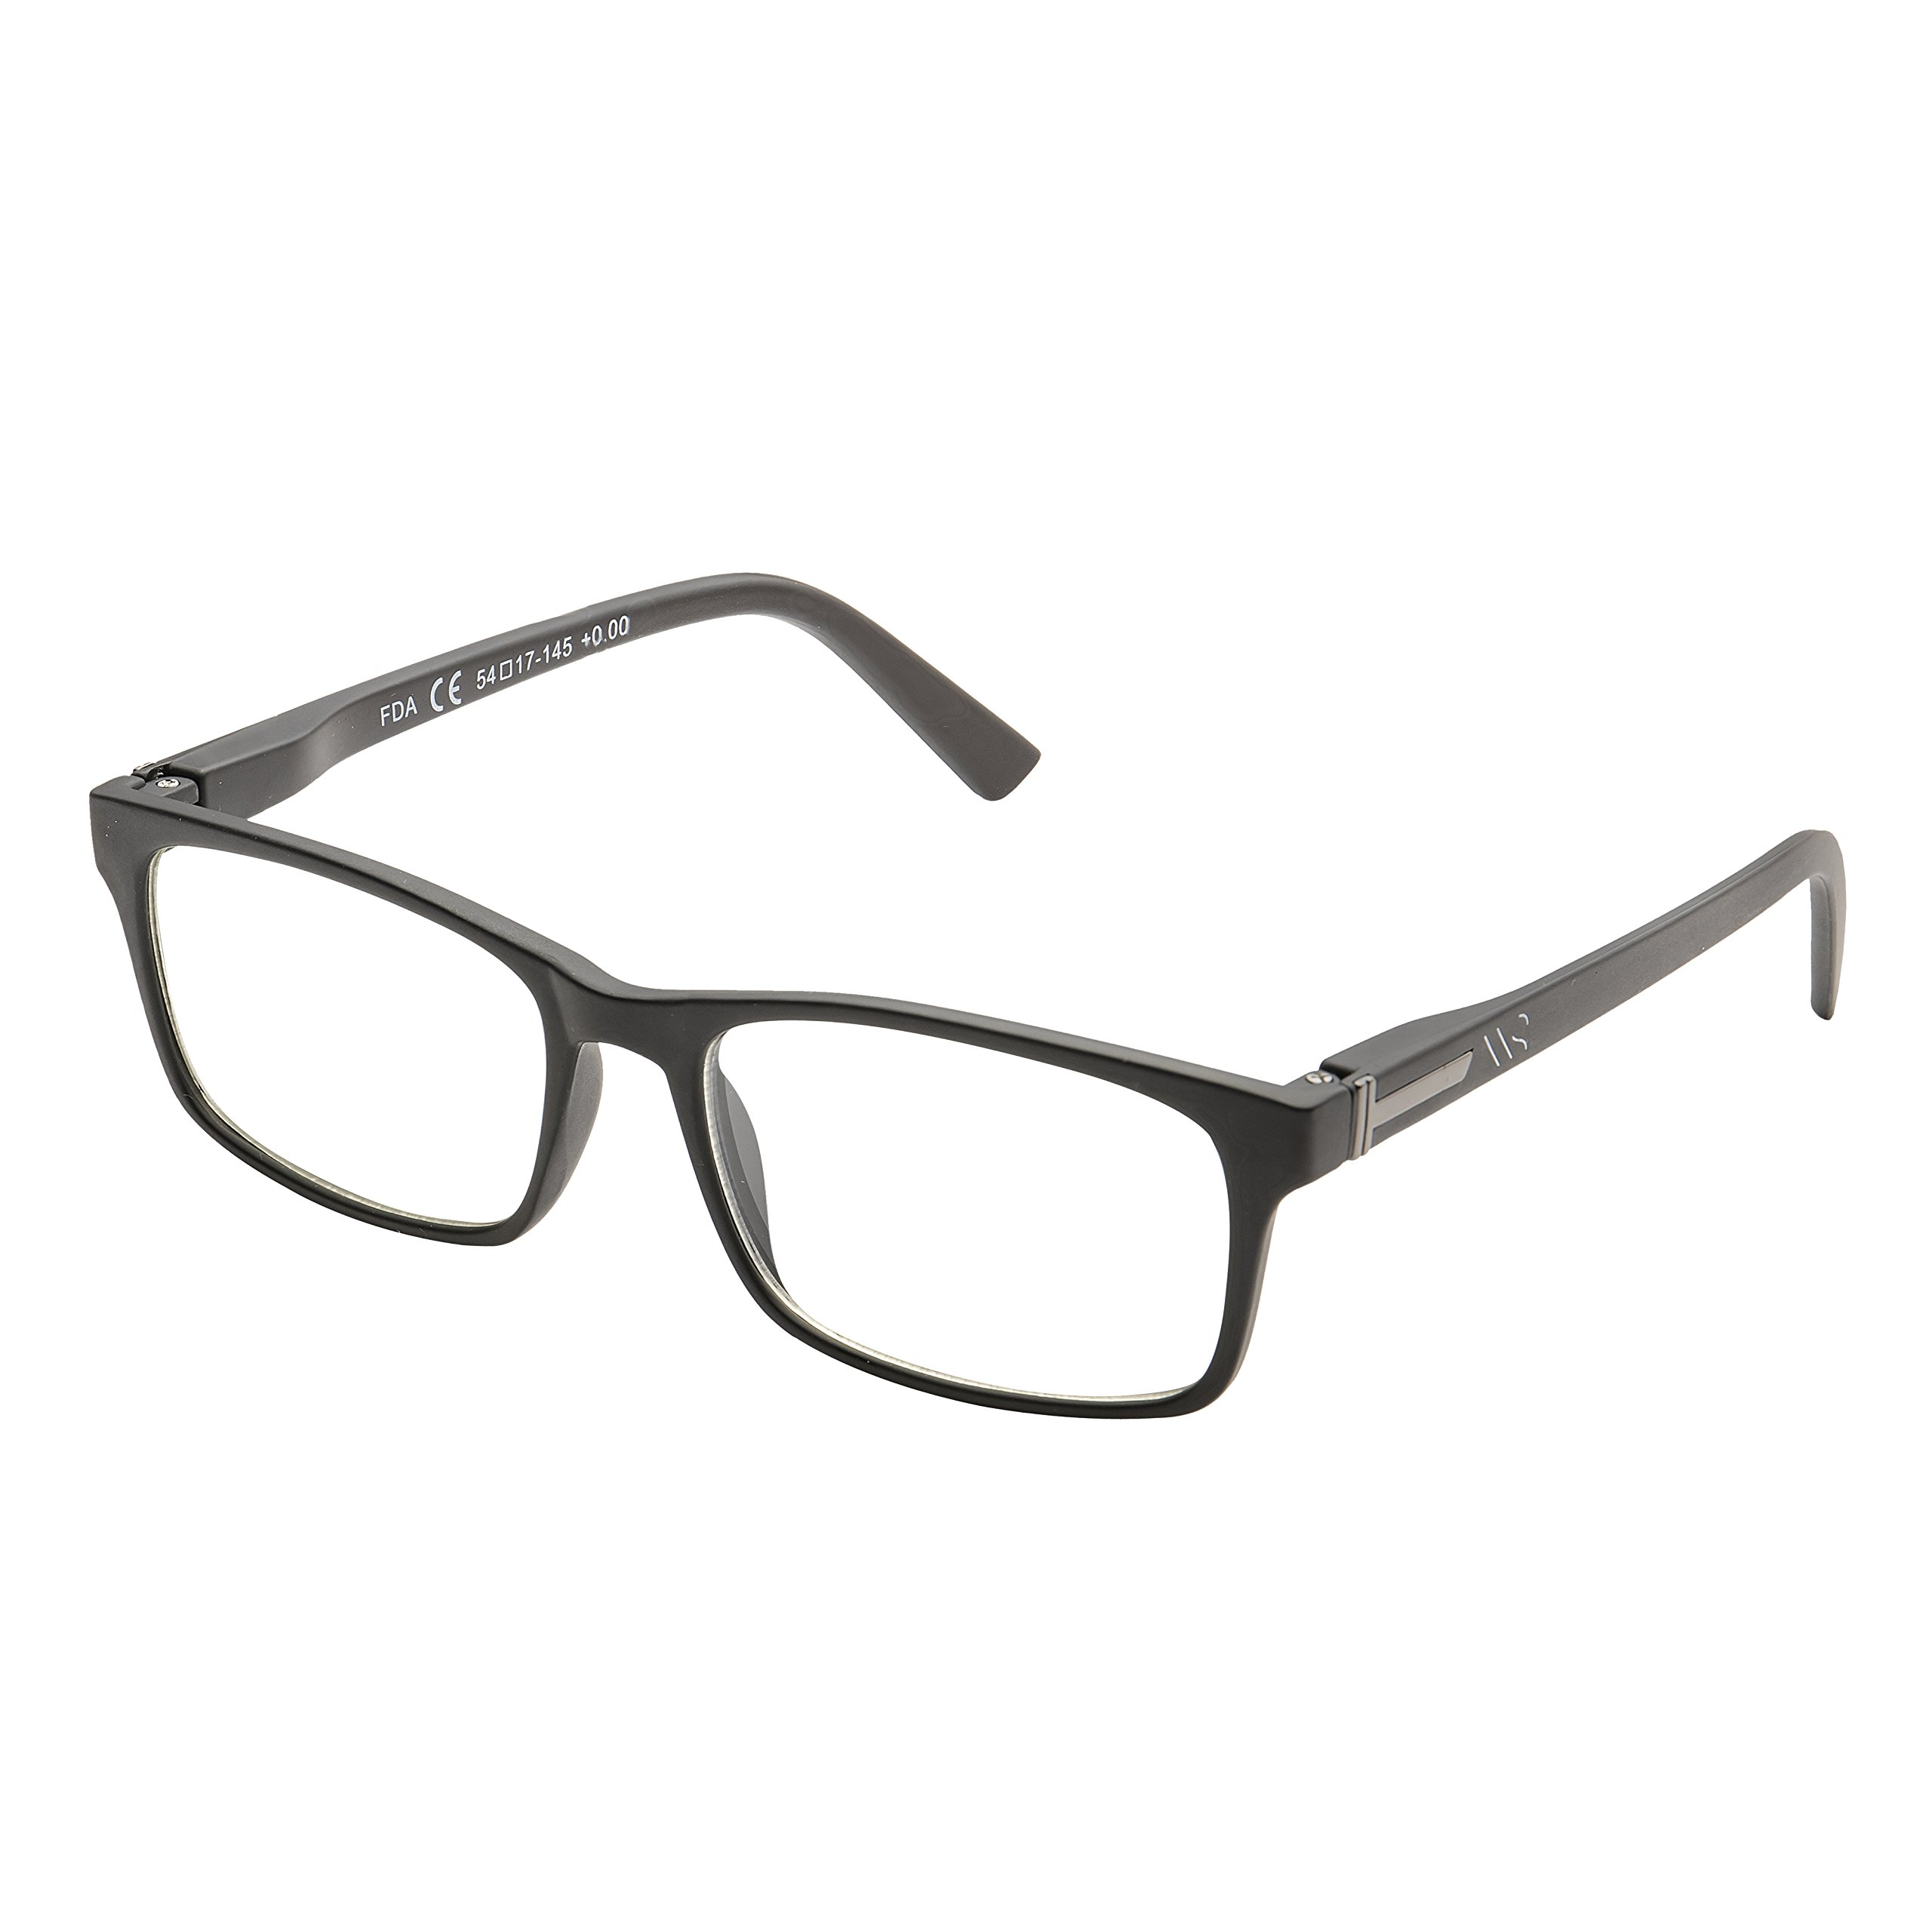 b8bb782f4c Blue Light Blocking Computer Glasses by WealthyShades-FDA Approved-Sleep  Better